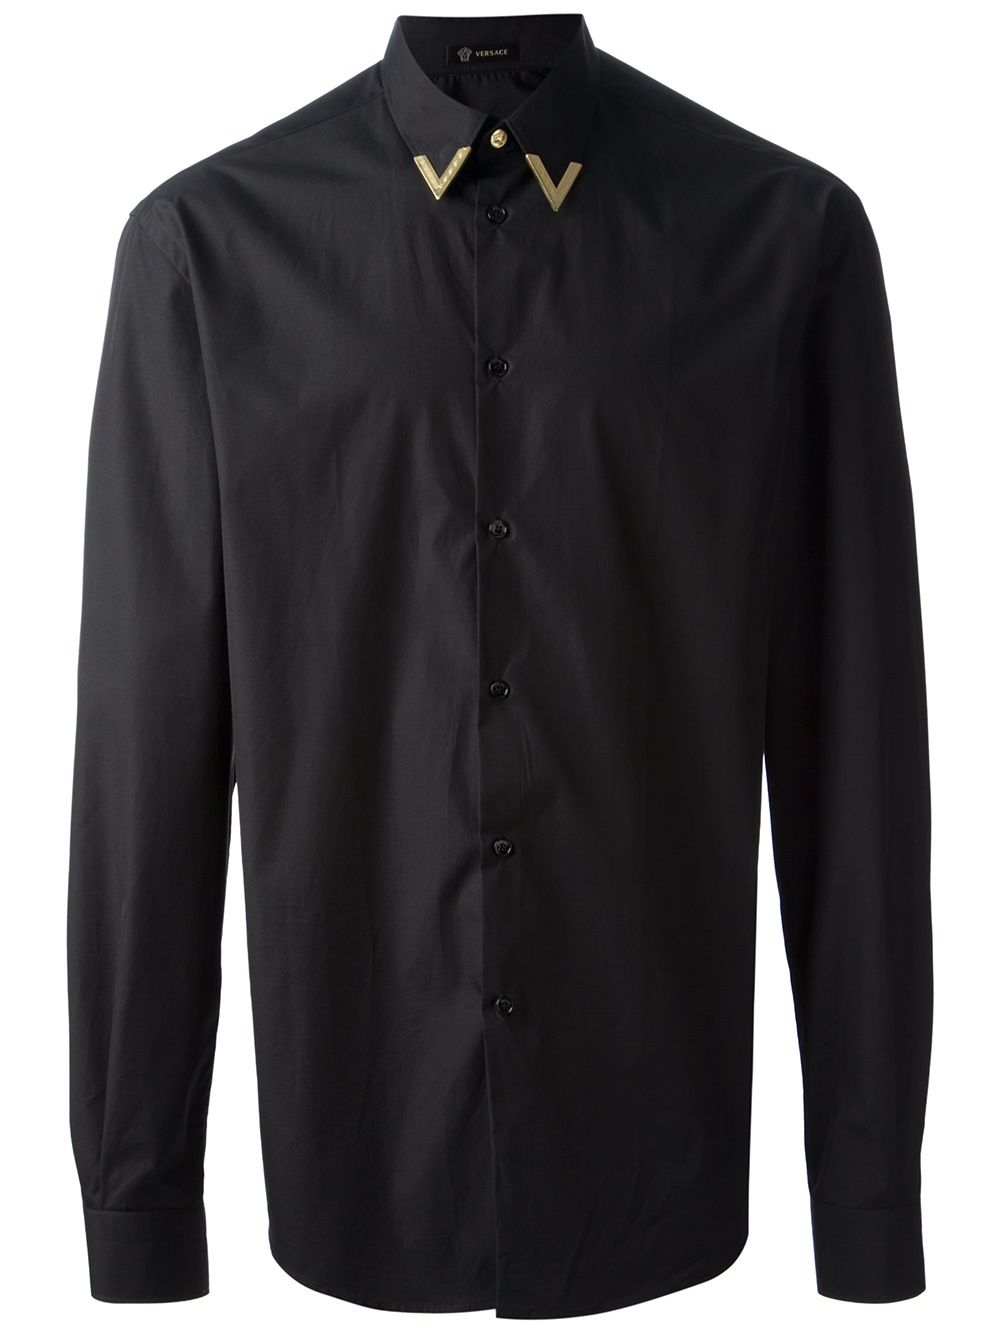 670cfd00 Versace black shirt with gold metal collar tip. | CLOTHING ...